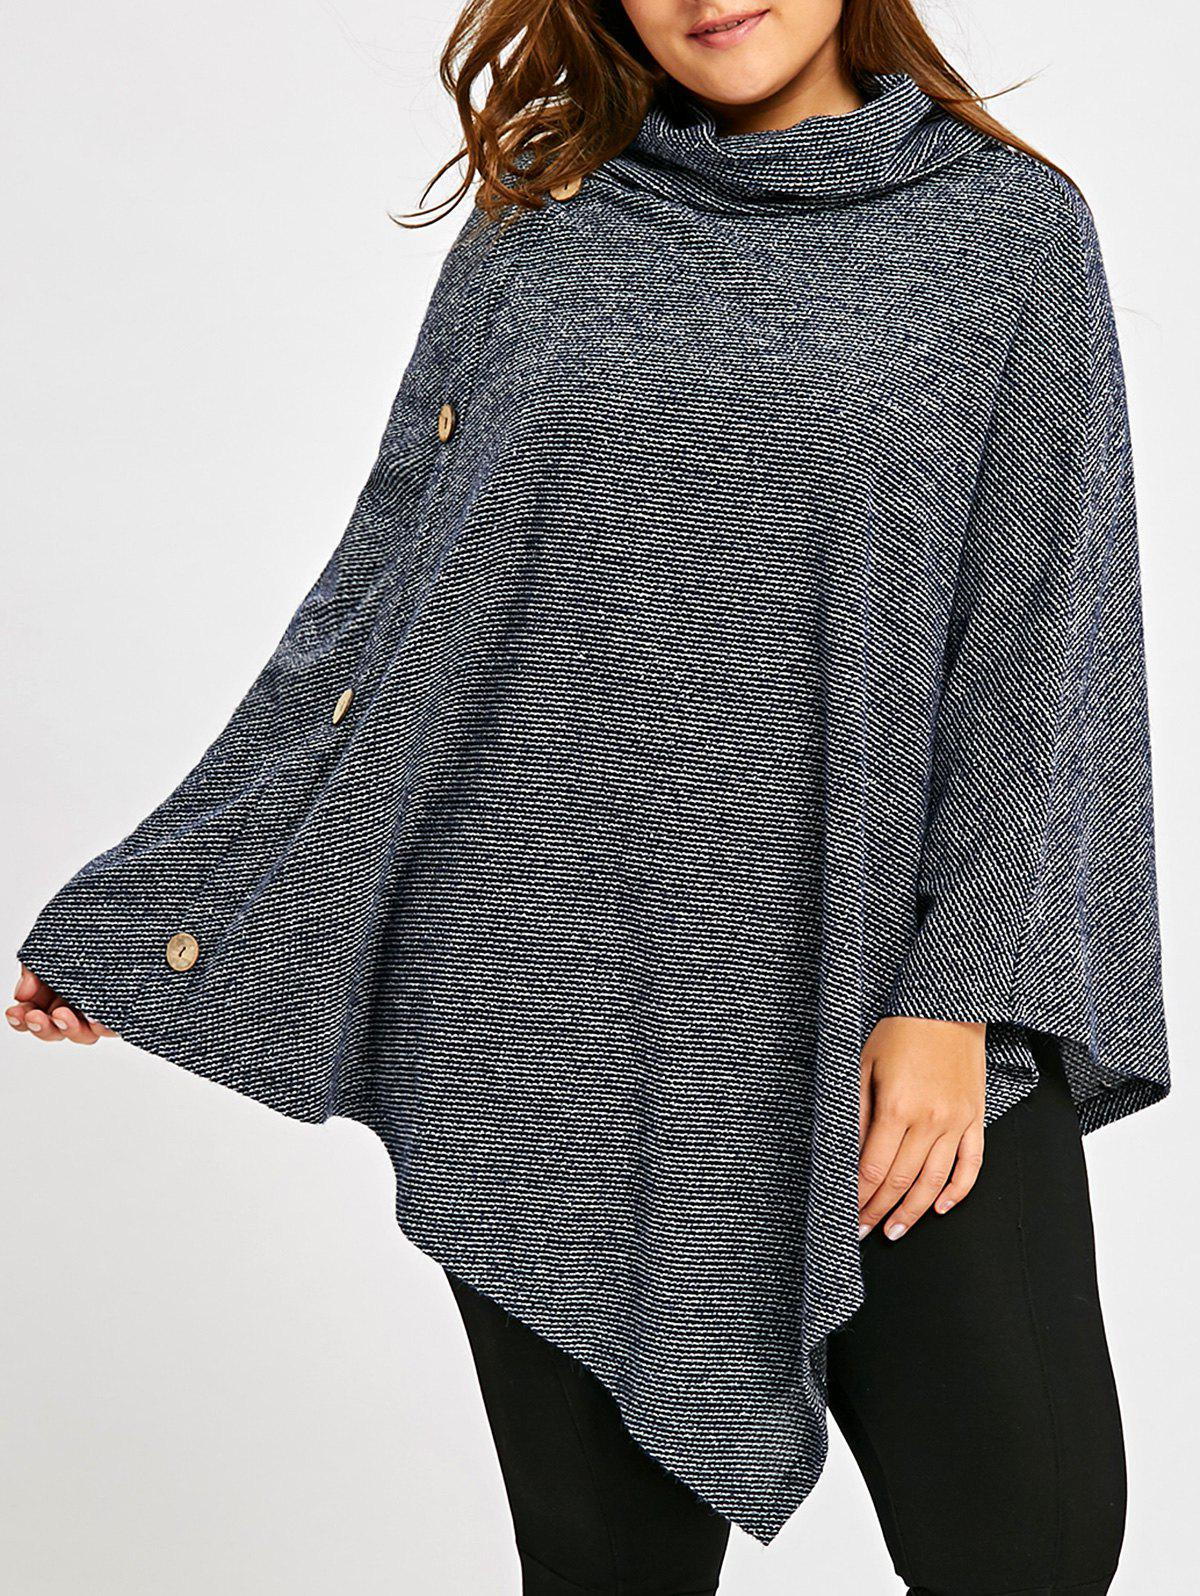 Plus Size Cowl Neck Poncho TopWOMEN<br><br>Size: 5XL; Color: BLUE GRAY; Type: Pullovers; Material: Polyester; Sleeve Length: Full; Collar: Cowl Neck; Style: Casual; Season: Fall,Spring; Pattern Type: Solid; Weight: 0.4700kg; Package Contents: 1 x Top;